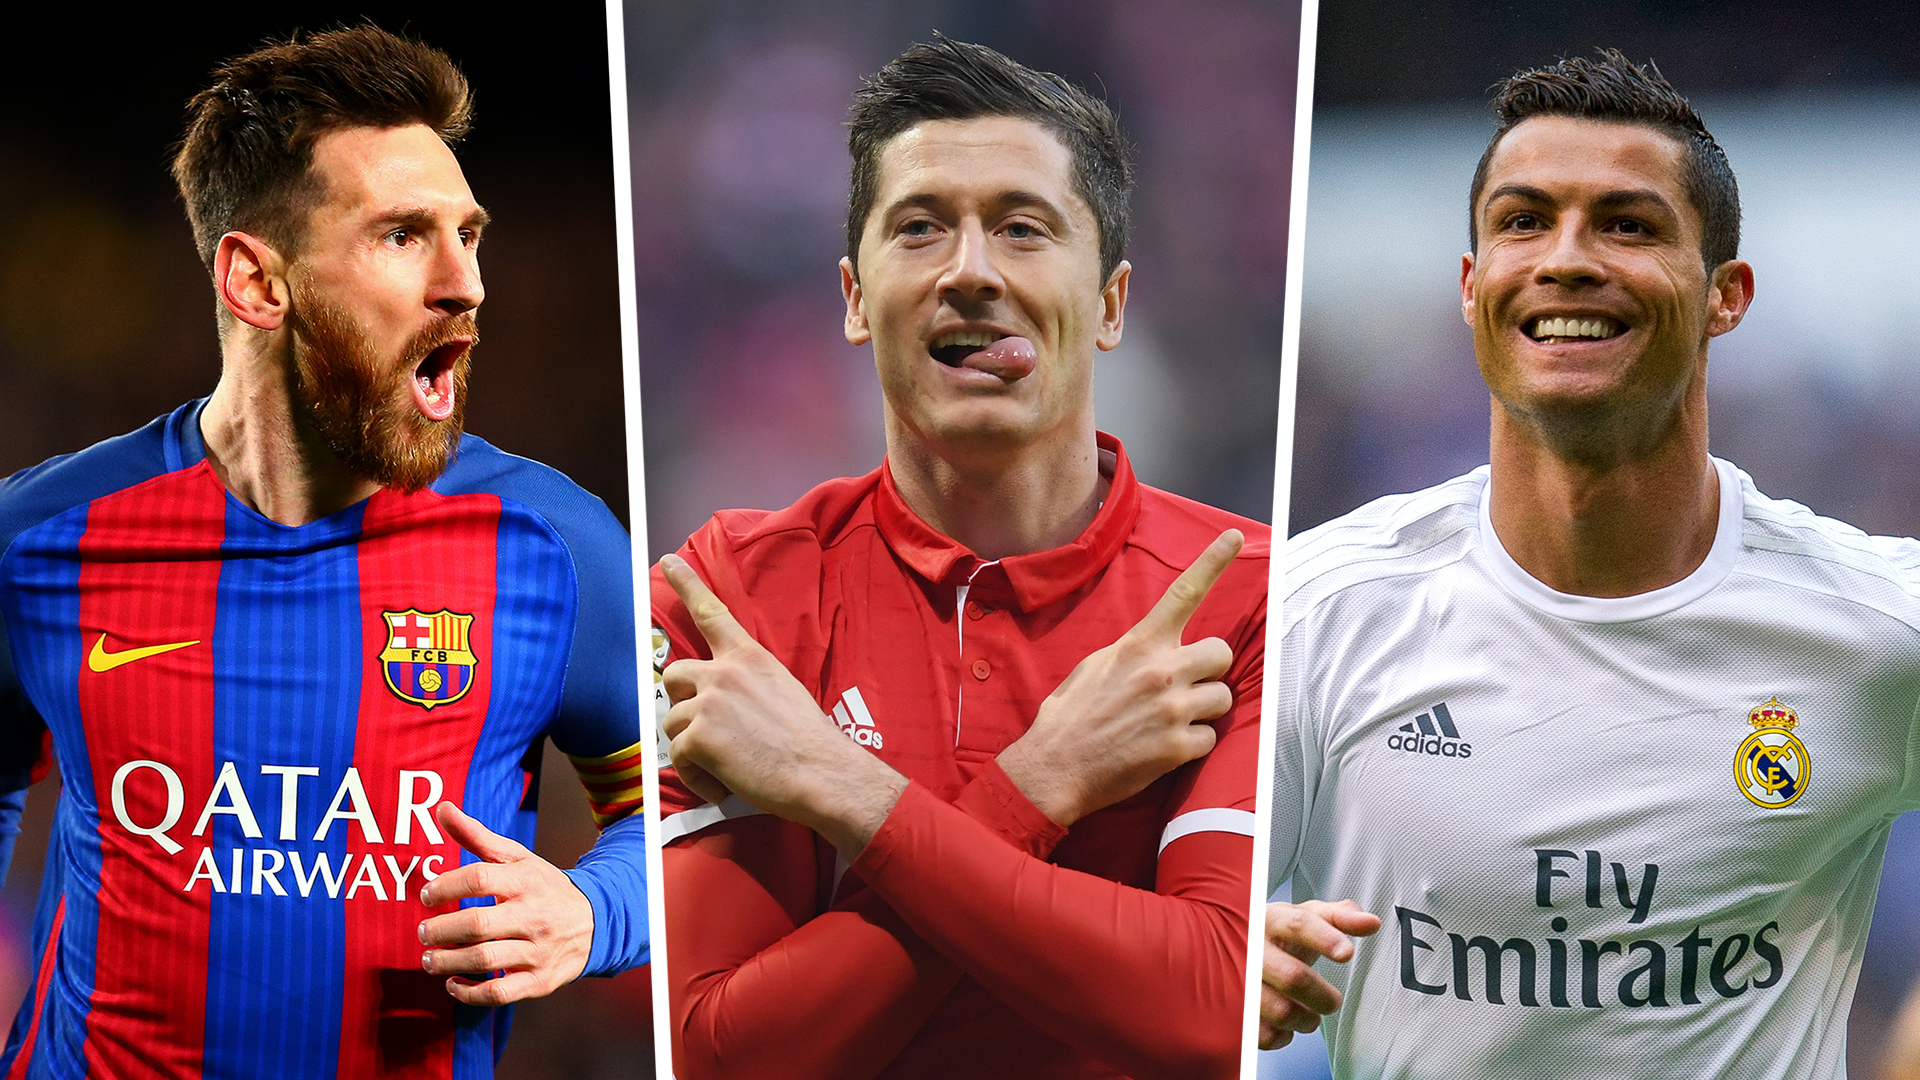 World Team Of The Decade Messi And Ronaldo Lead Attack Sporting News Canada